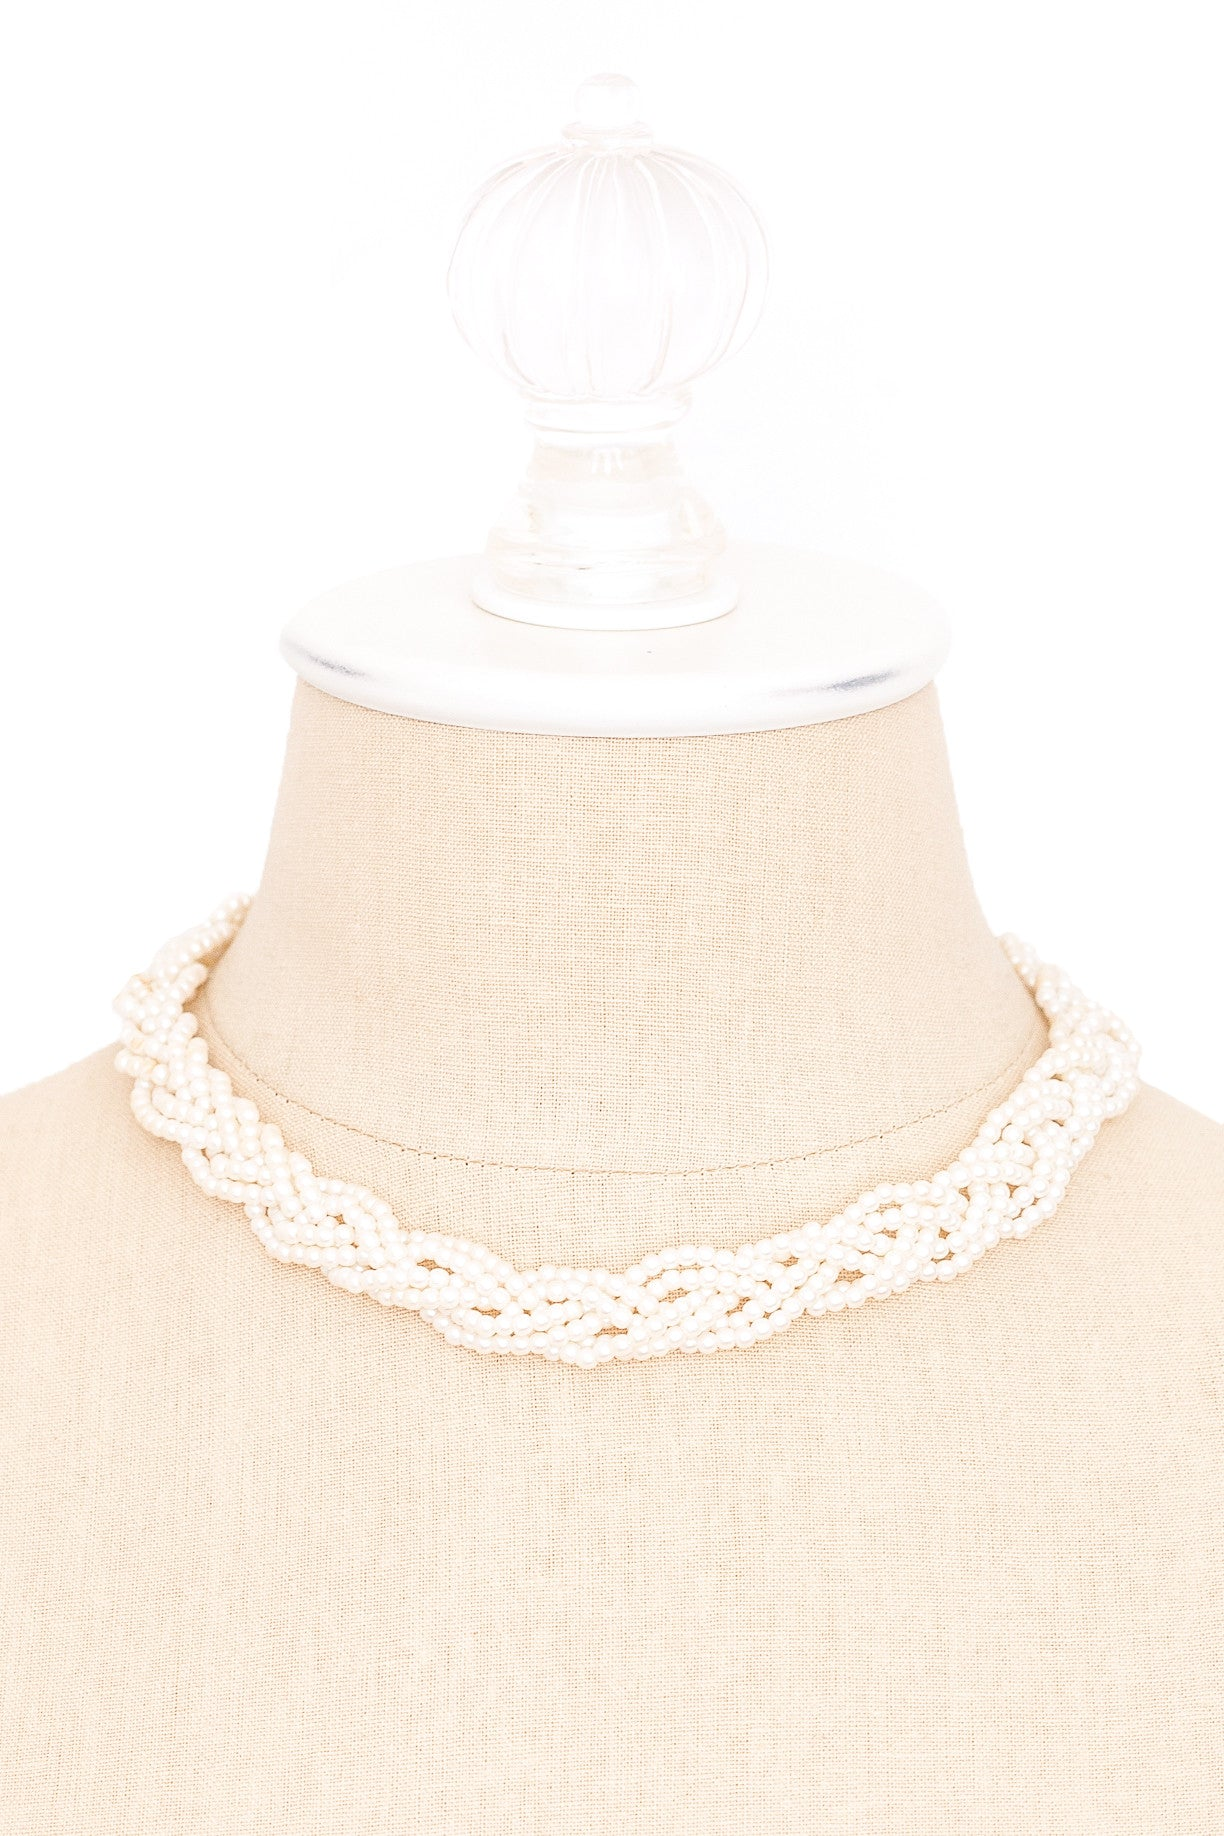 80's__Avon__Braided Pearl Necklace